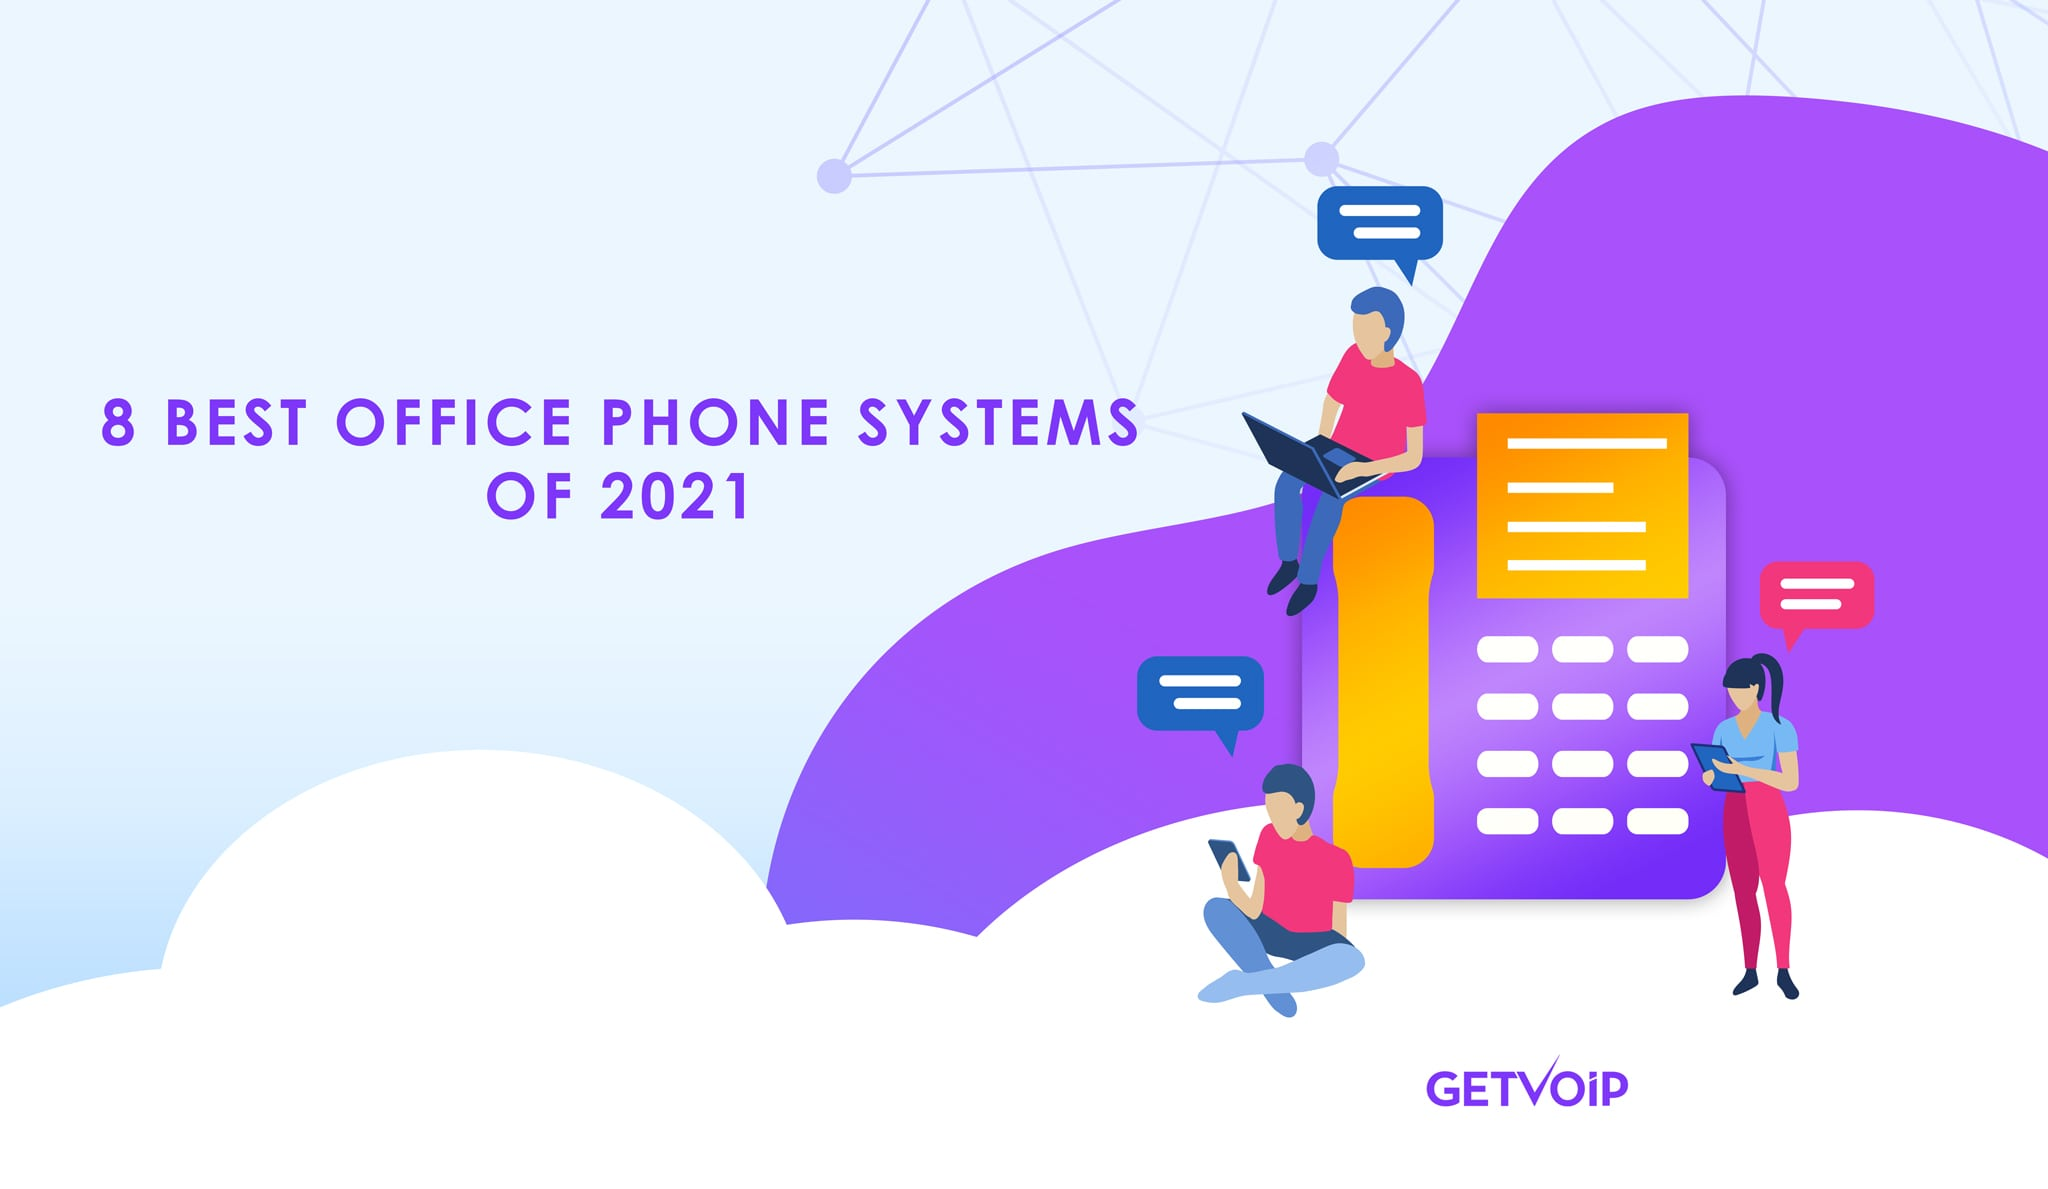 Top 8 Office Phone Systems in 2021